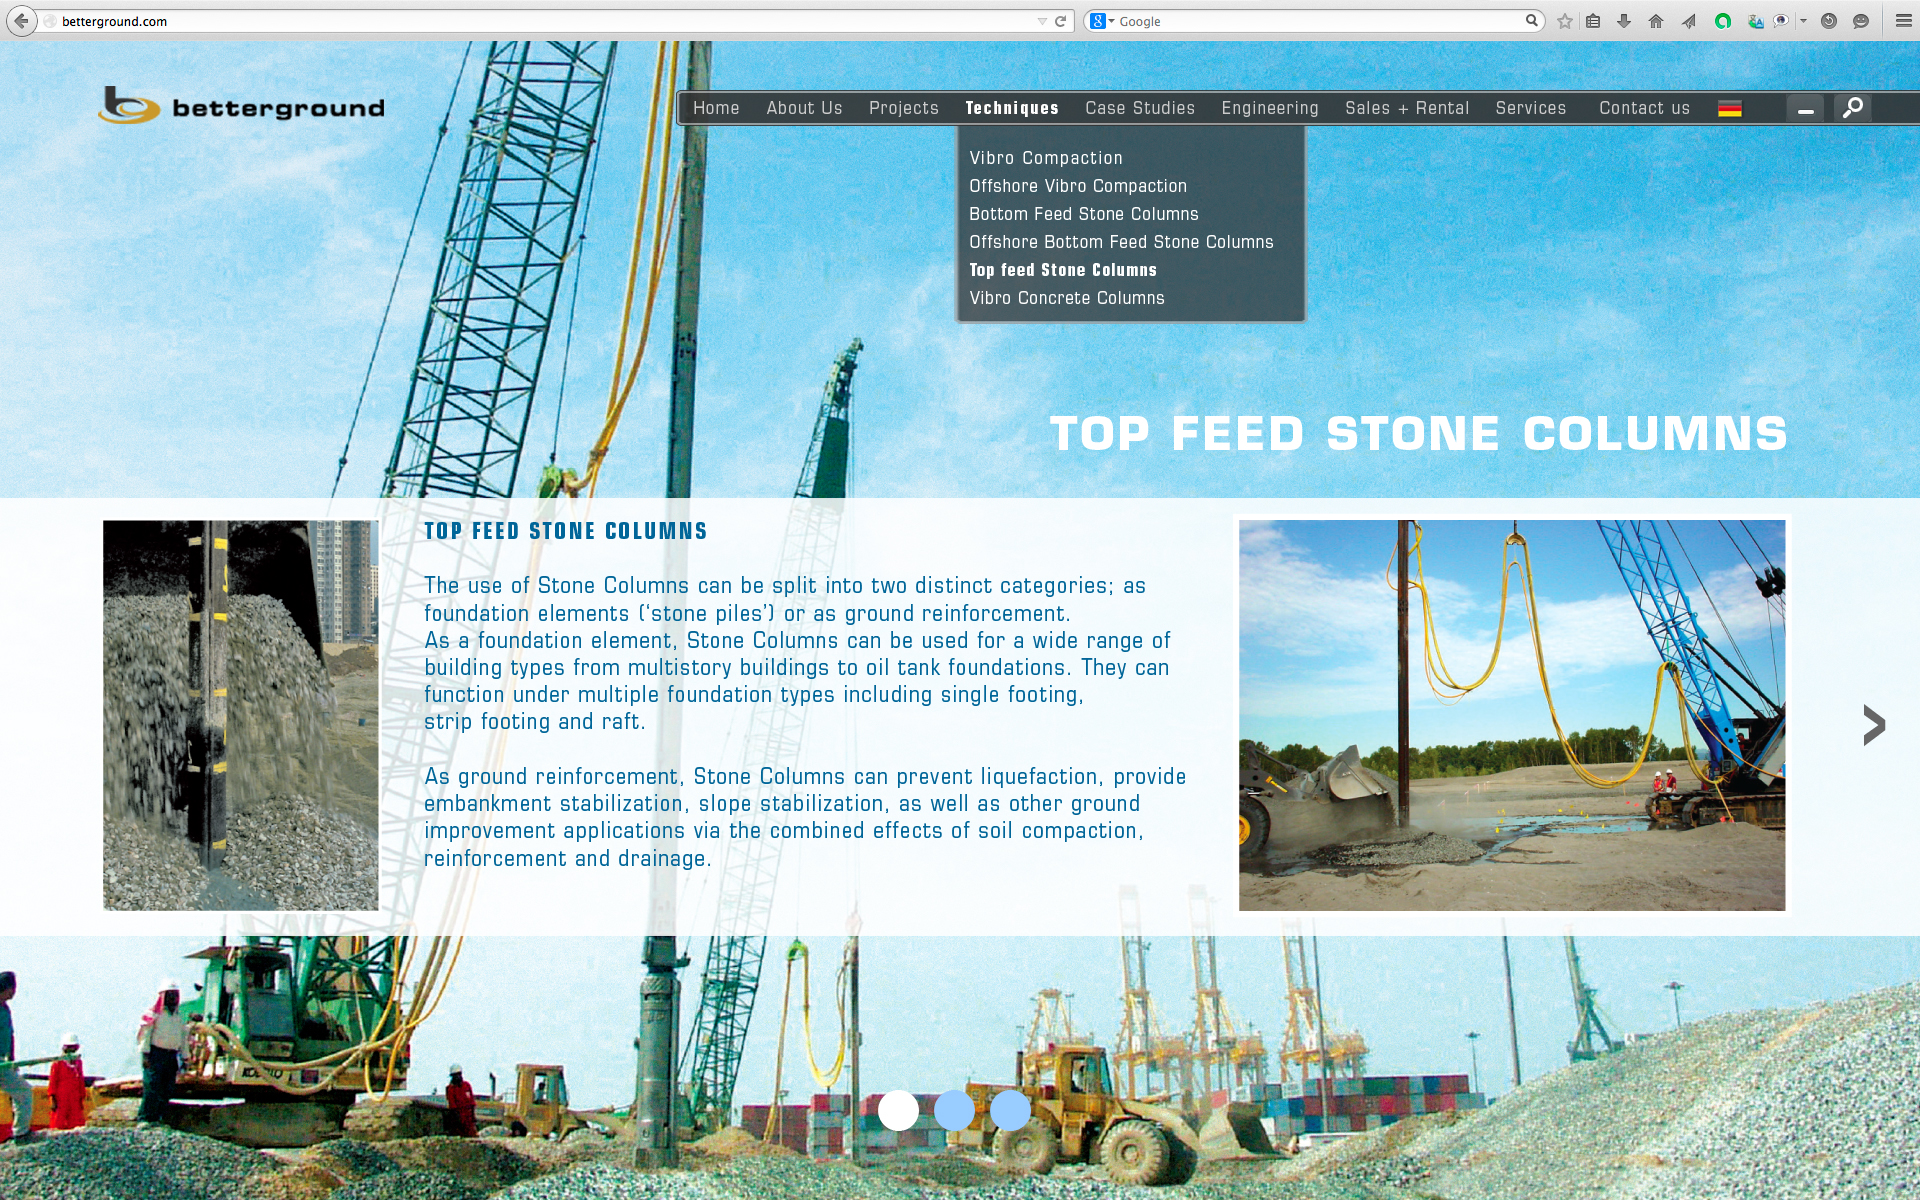 Top Feed Stone Columns 1